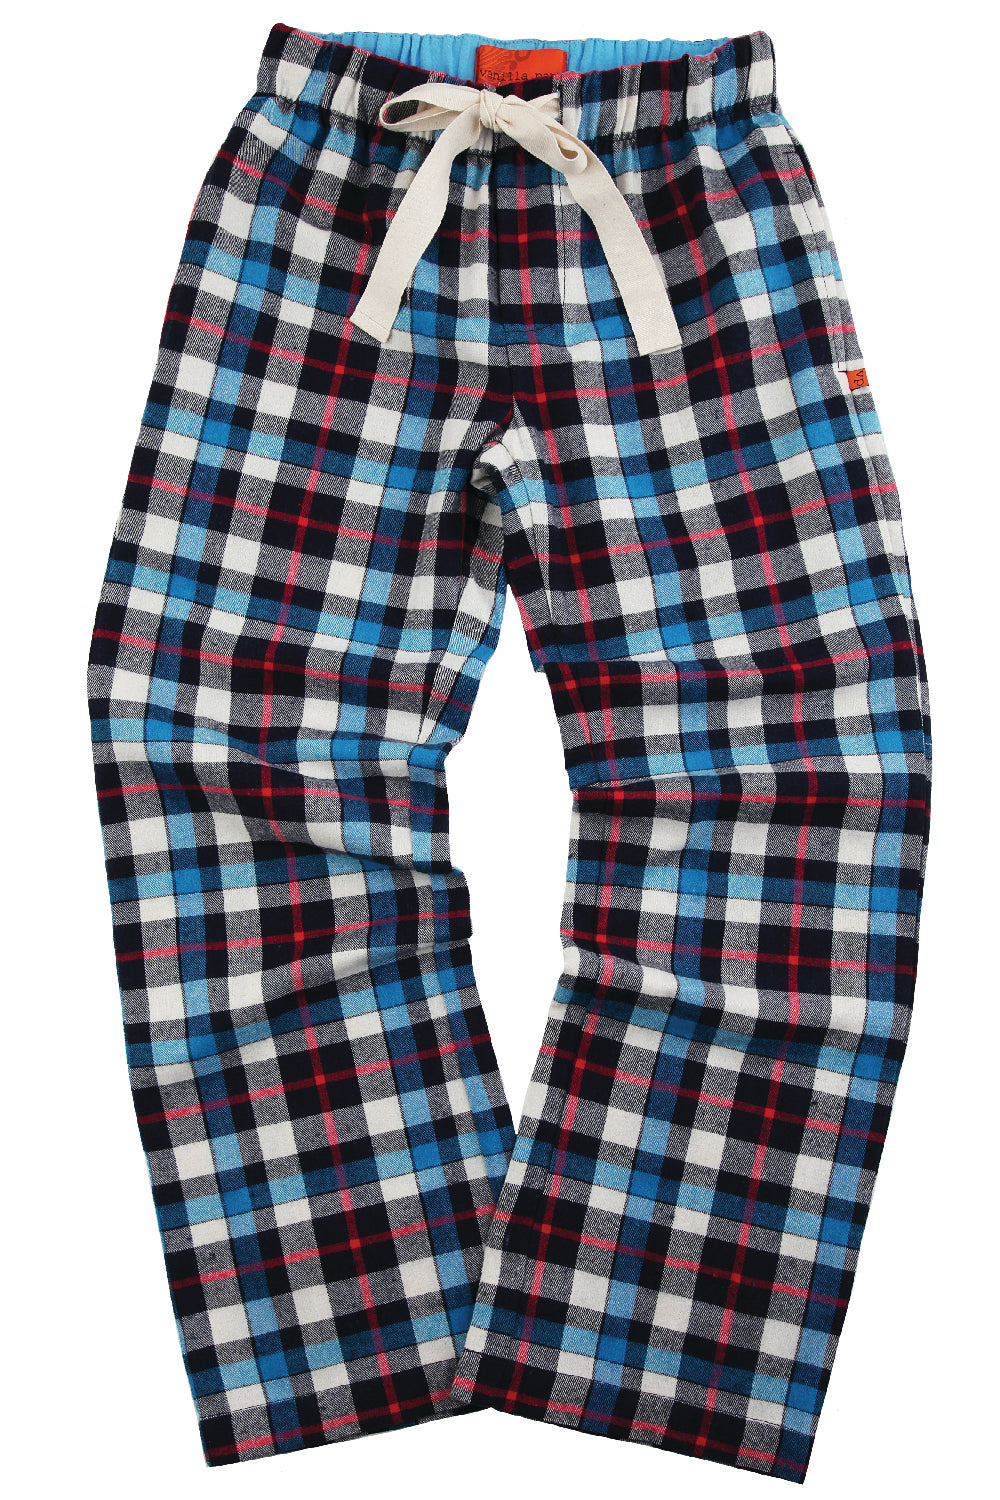 GALWAY Unisex trousers for lounge and sleepwear ages 9-16 years